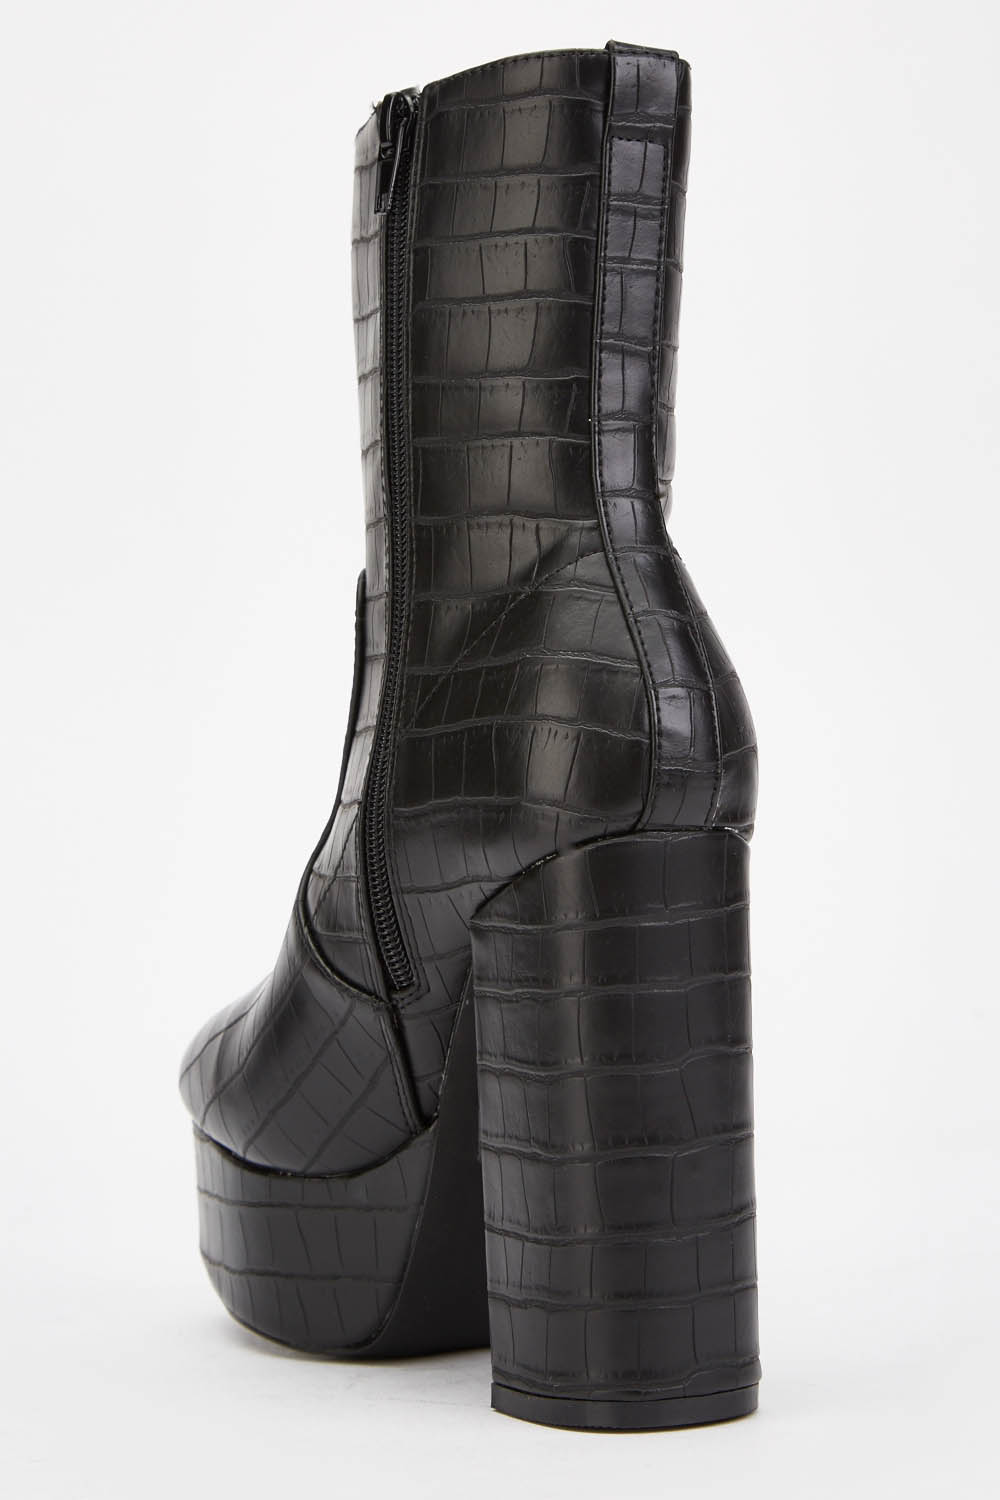 Mock Croc Chunky Boots - Just $6